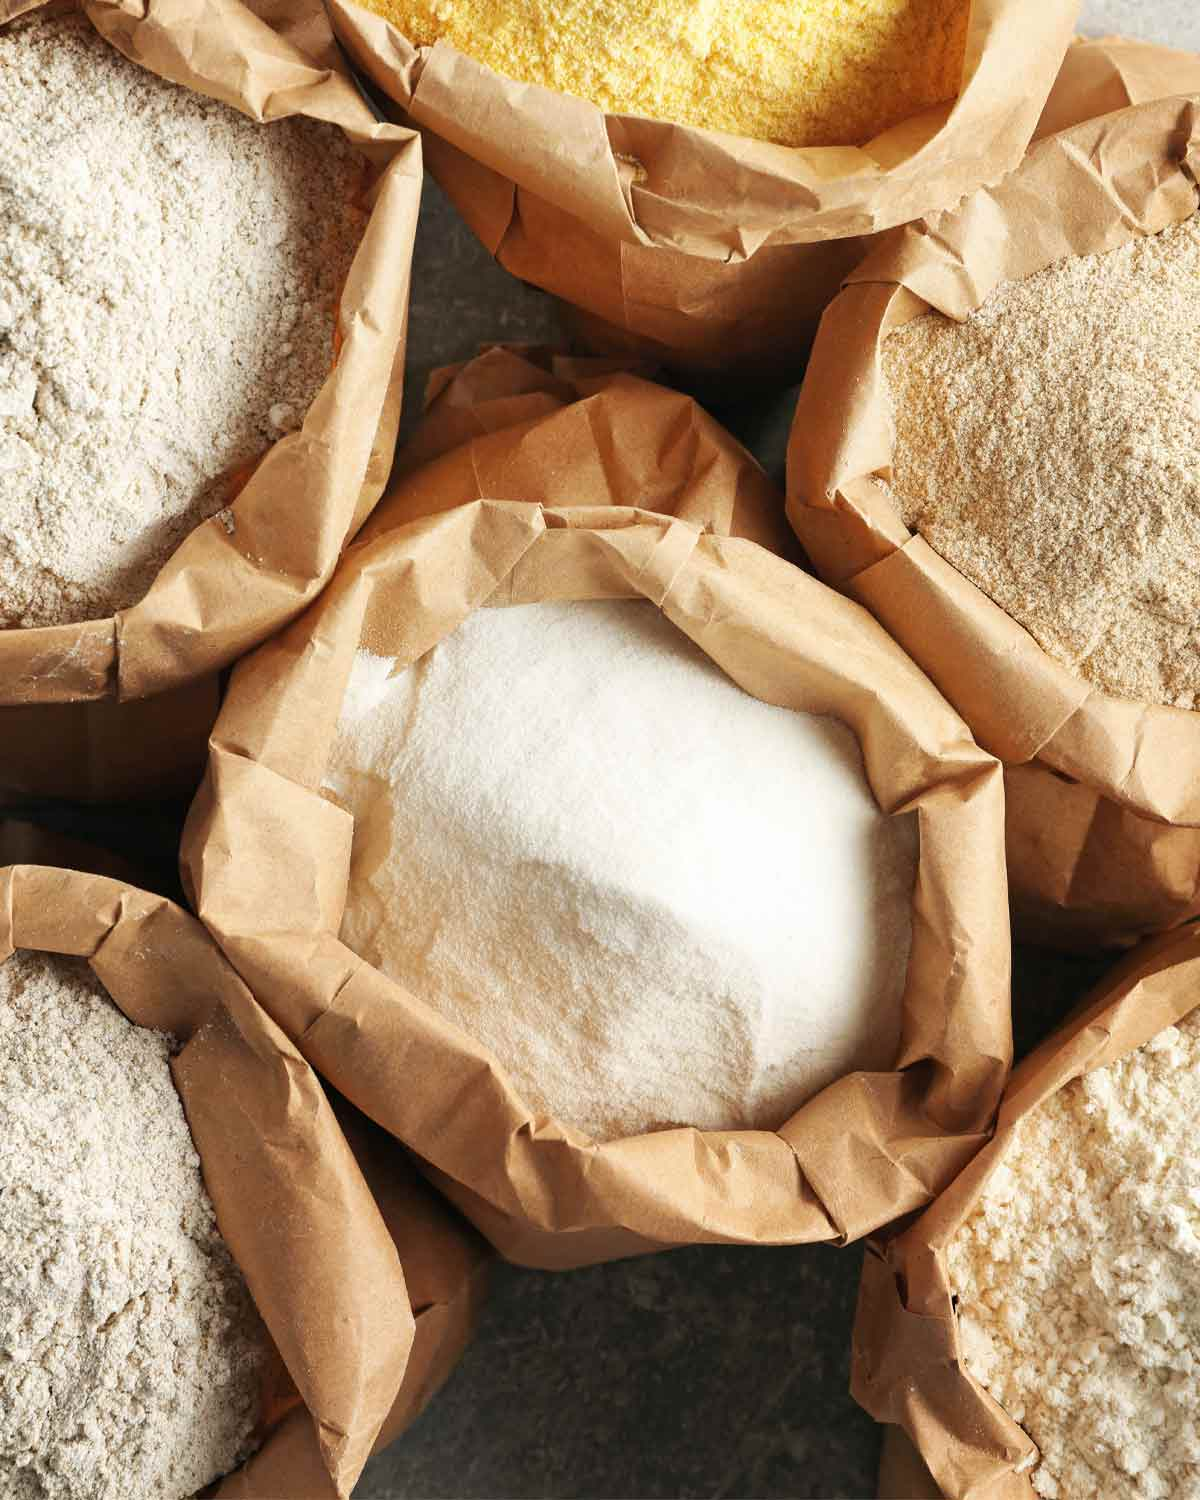 Open bags of different types of flours.